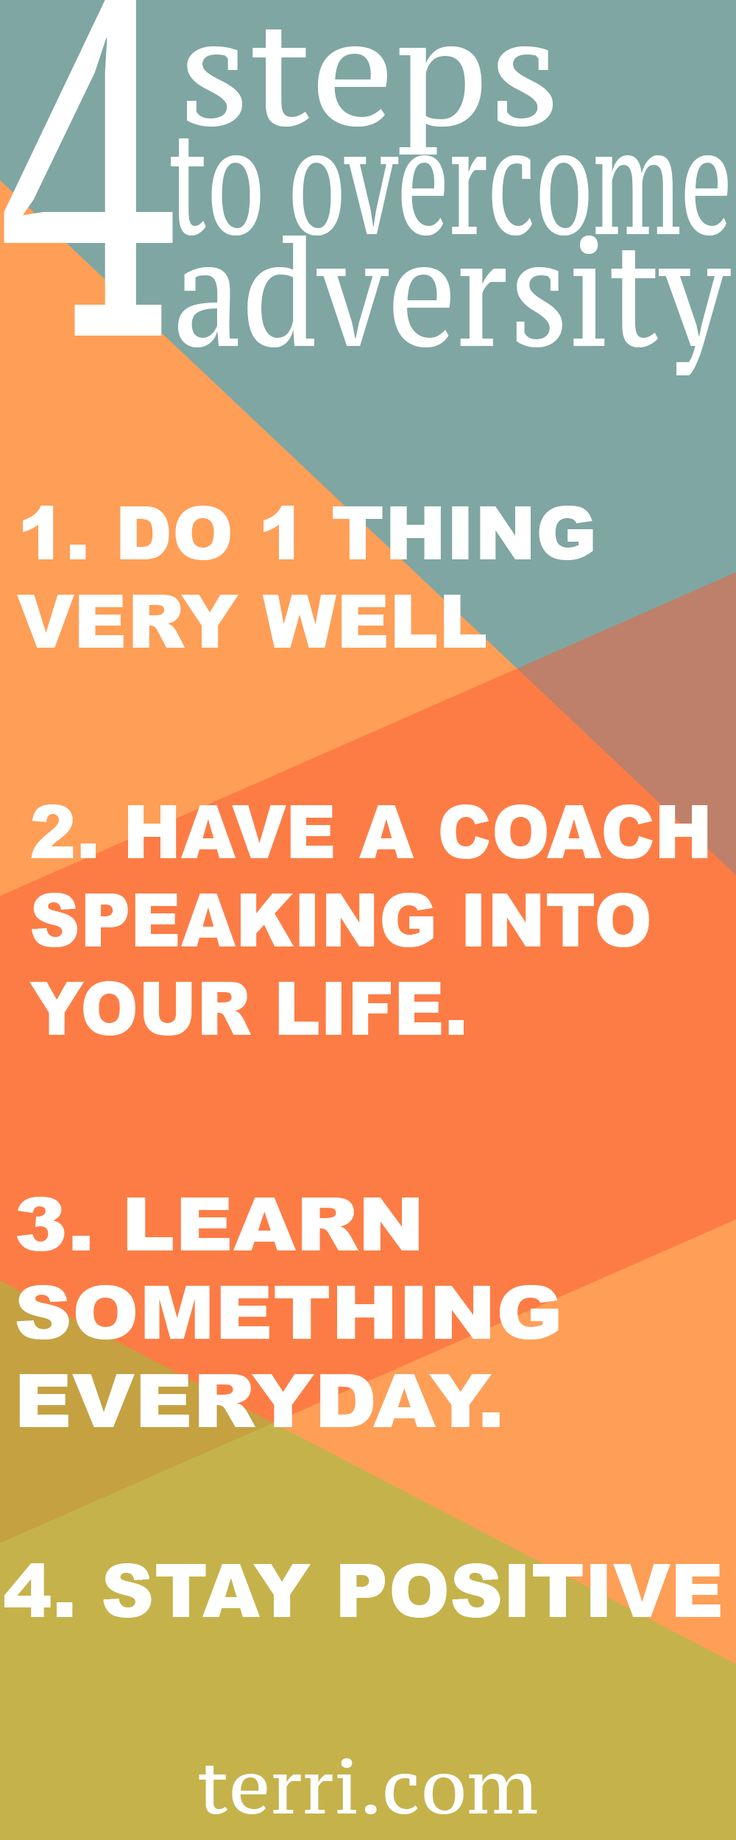 4 steps to overcome adversity! 1. Do one thing very well 2. have a coach speaking into your life 3. Learn something everyday 4. Stay positive For more motivational quotes, success tips and weekly podcast, follow Terri Savelle Foy